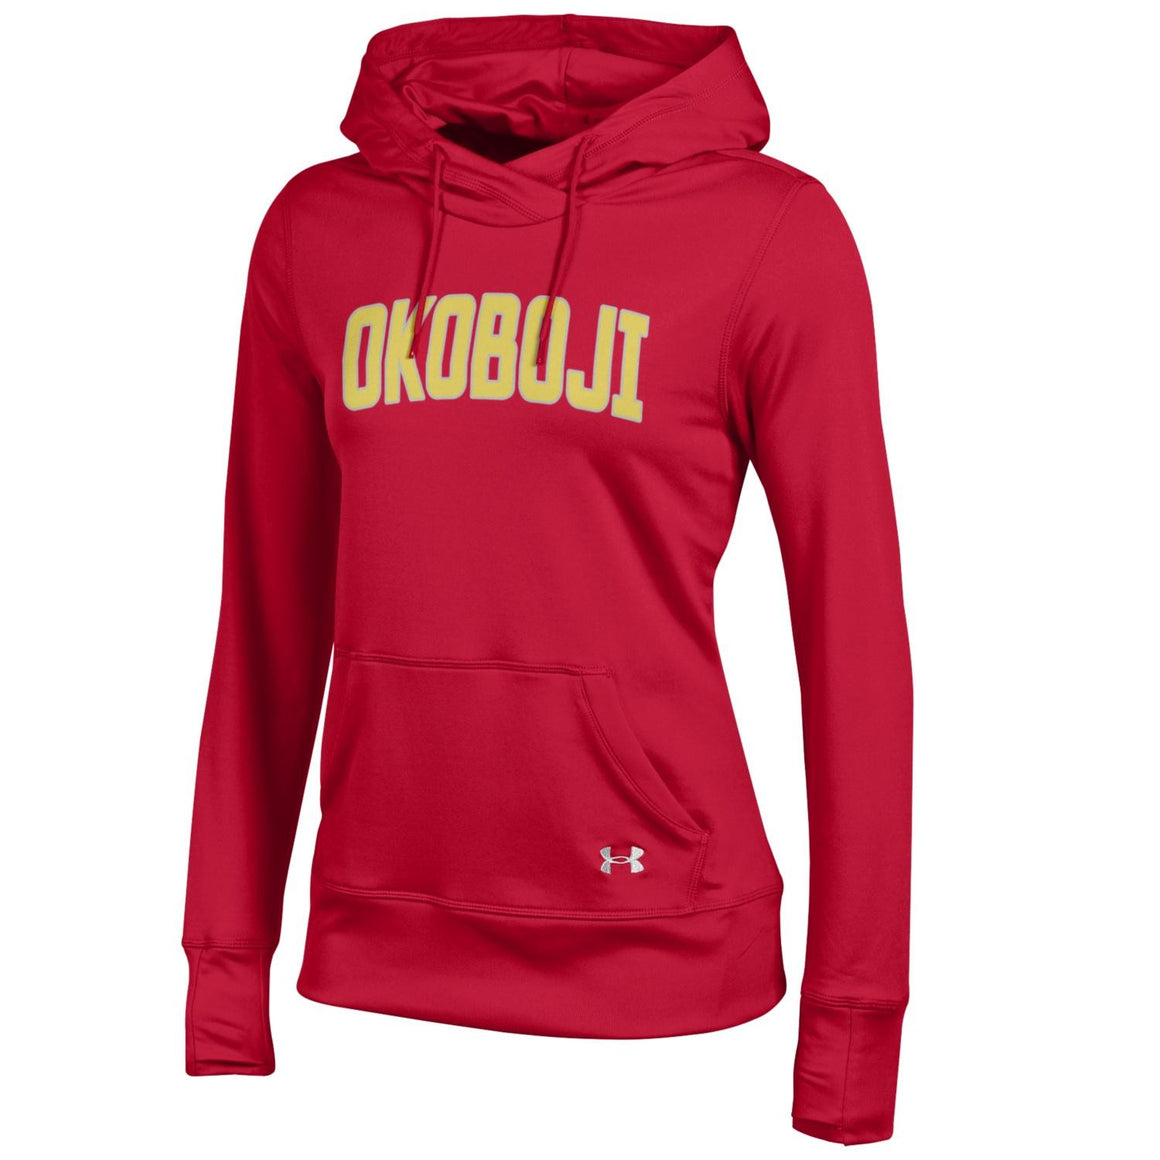 Ladies Reflective Okoboji Under Armour Hoodie - Red